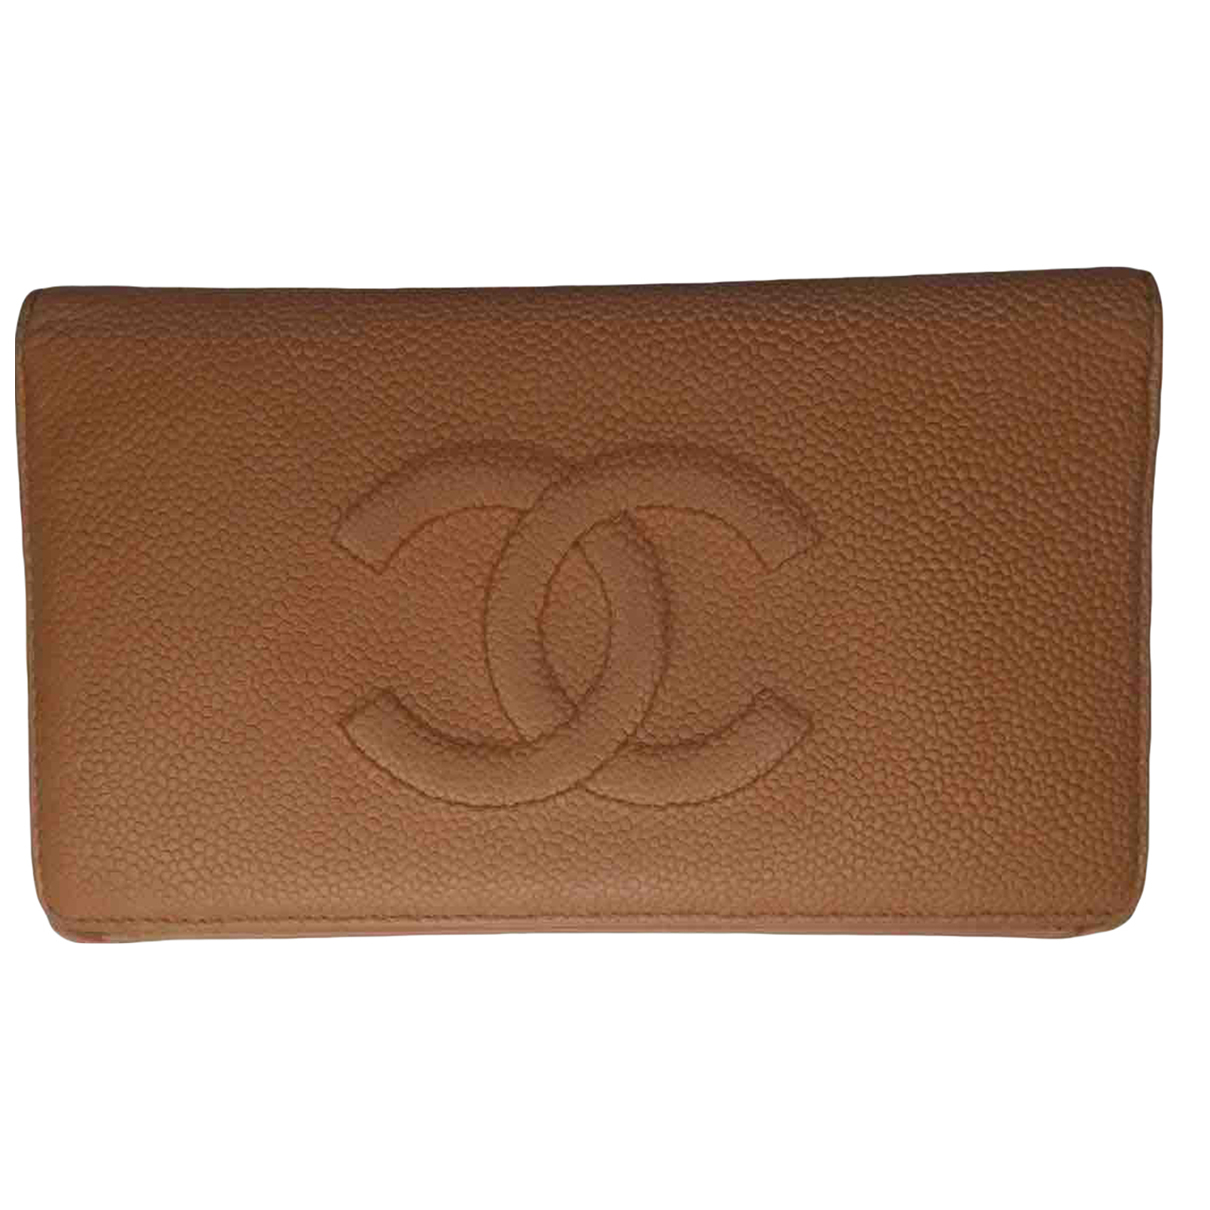 Chanel N Camel Leather wallet for Women N